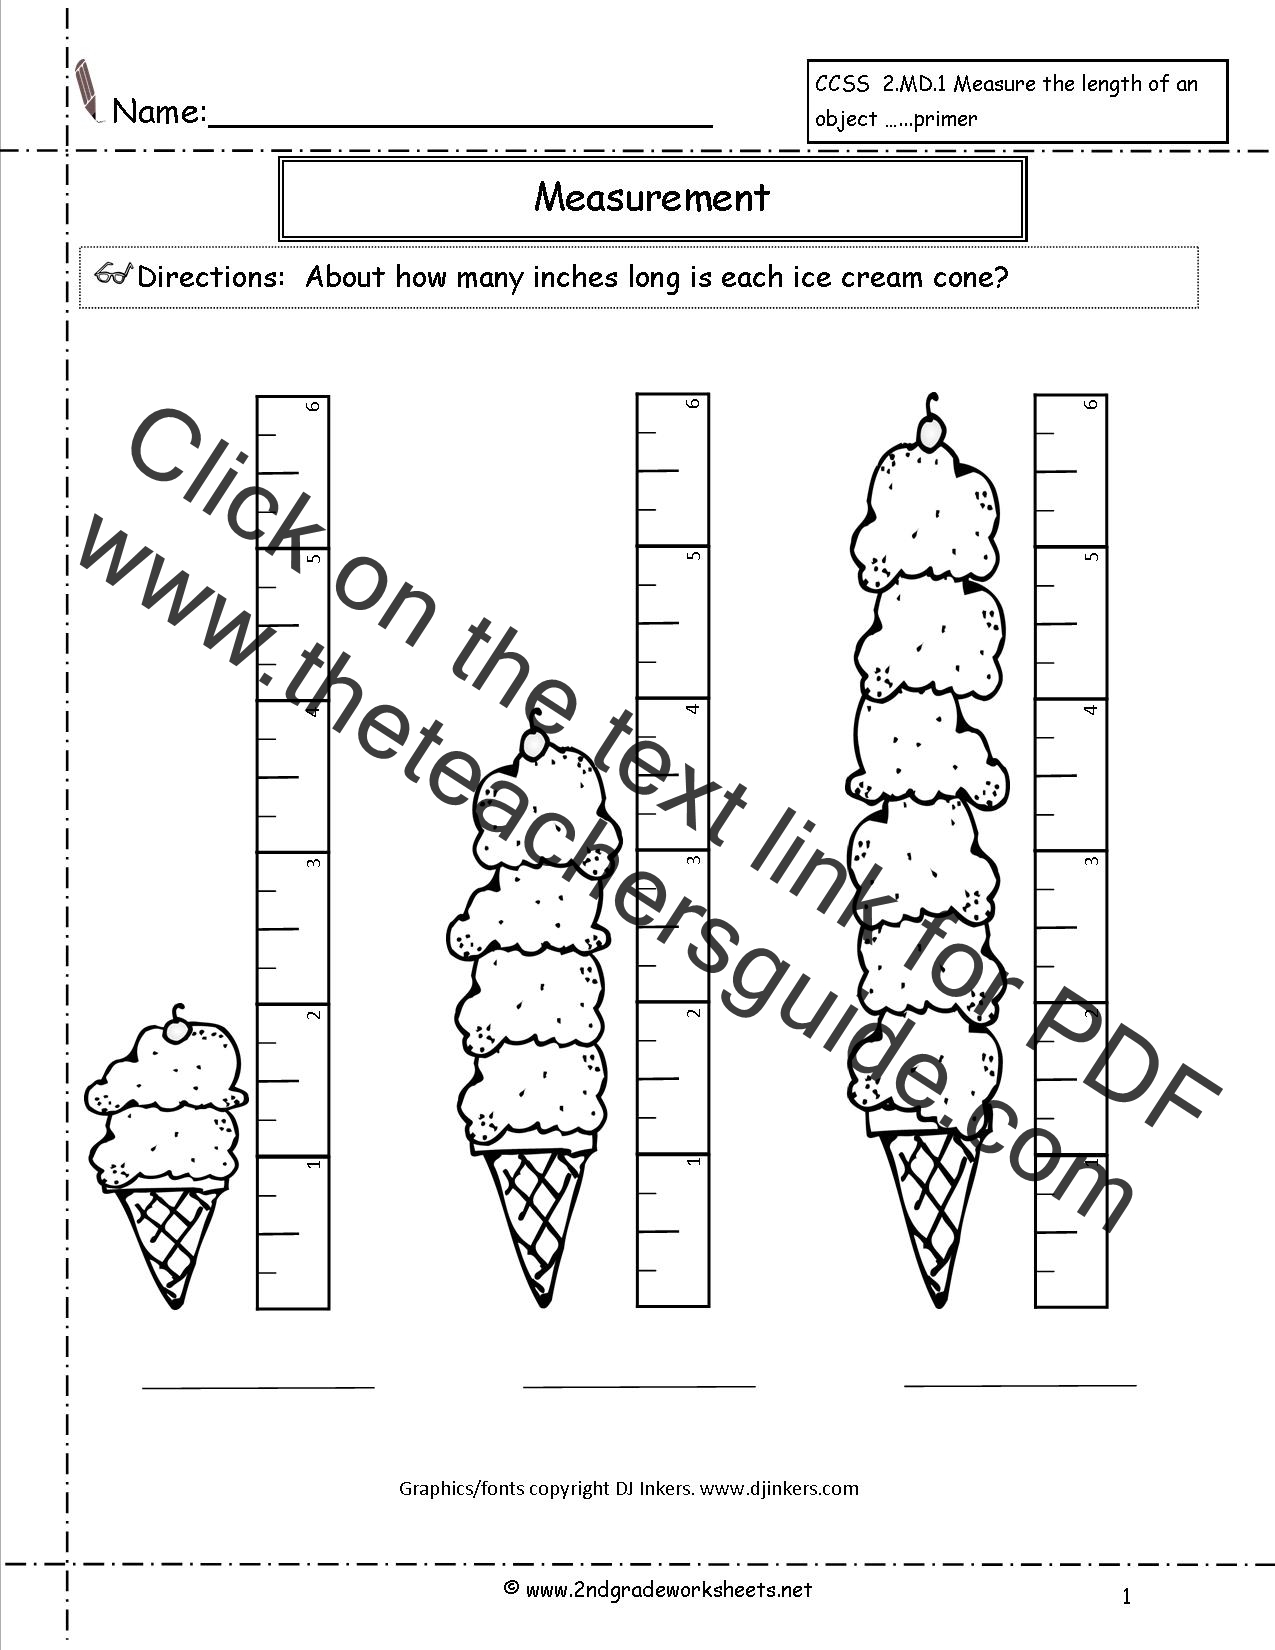 CCSS 2MD1 Worksheets Measuring Worksheets – Second Grade Measurement Worksheets